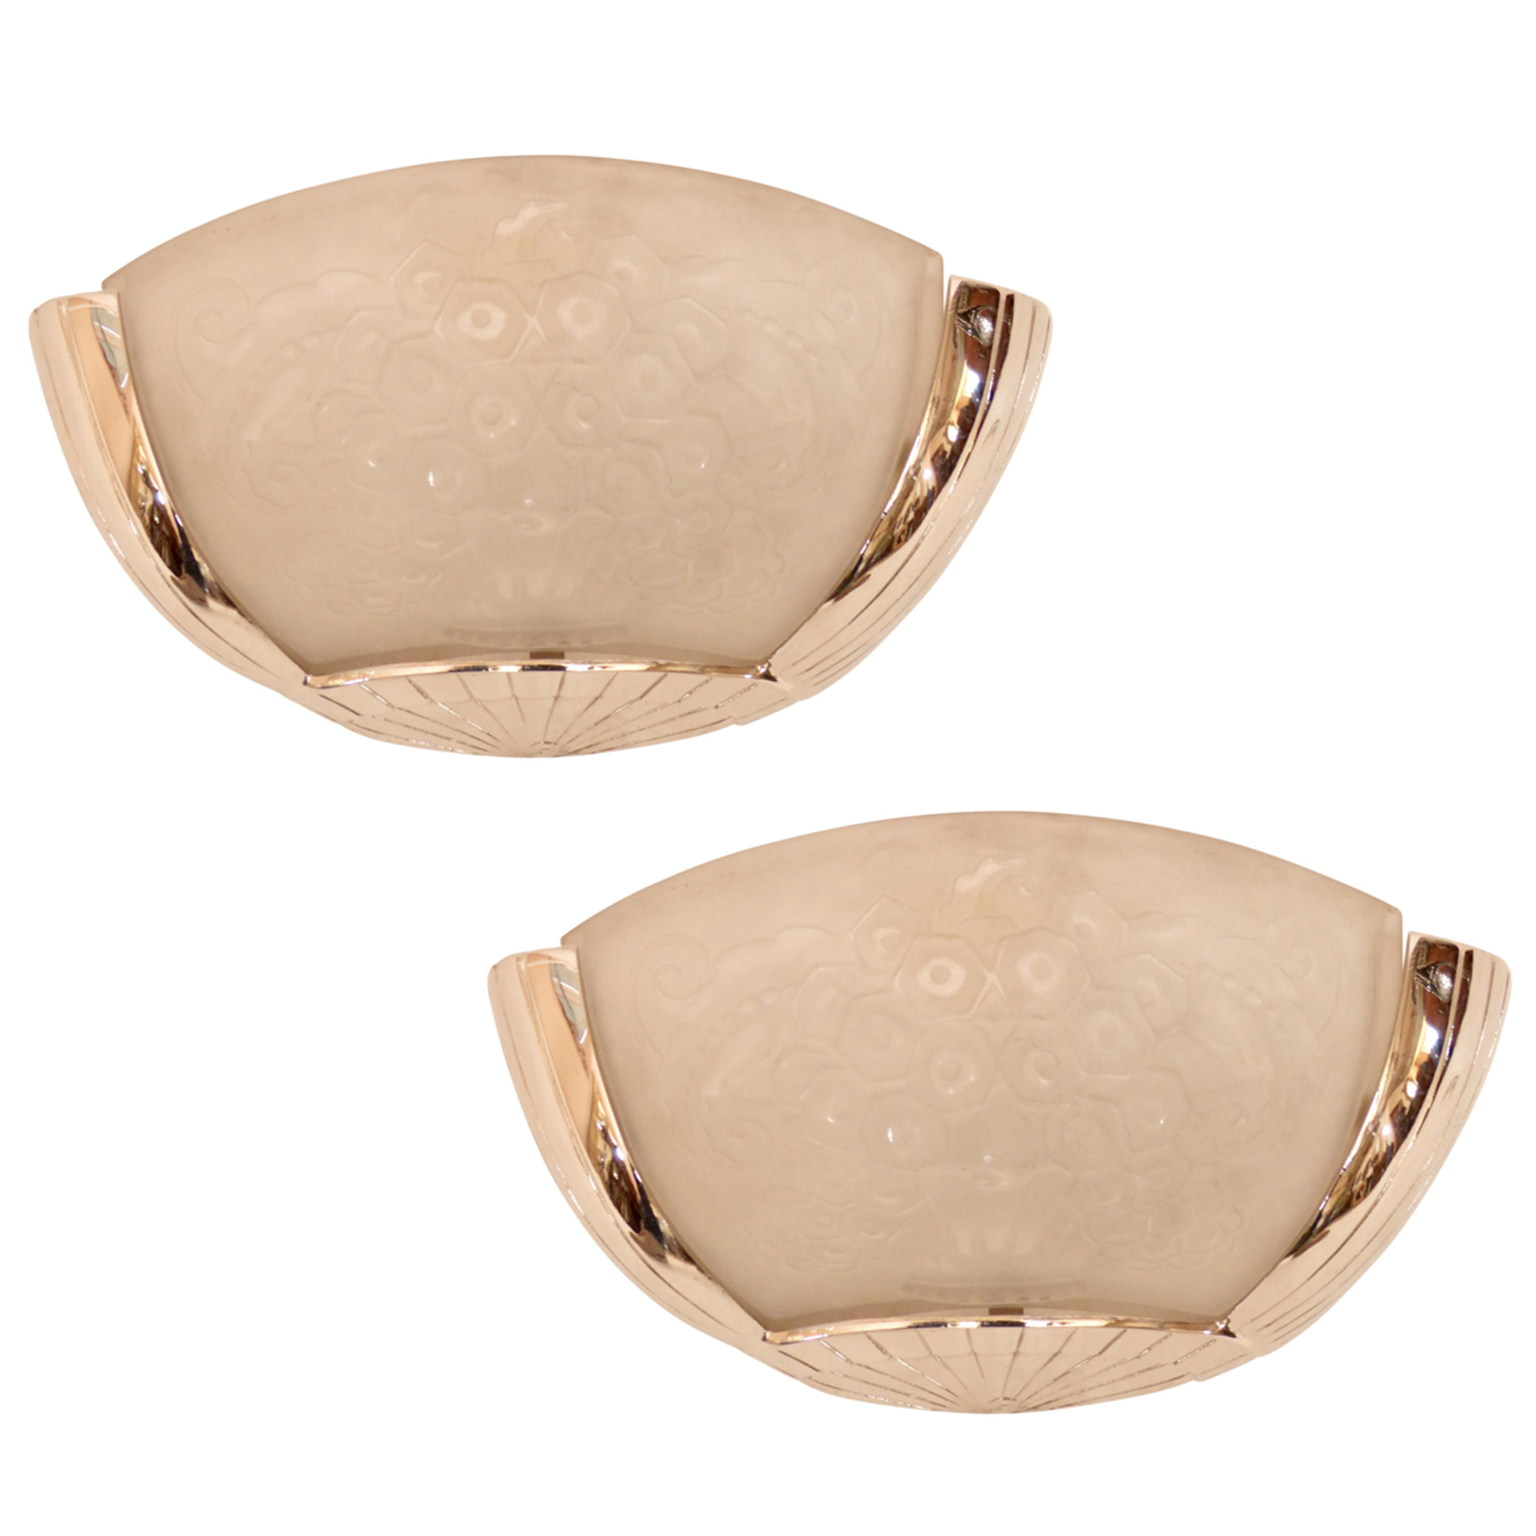 Sconces with frosted glass and brass hardware.